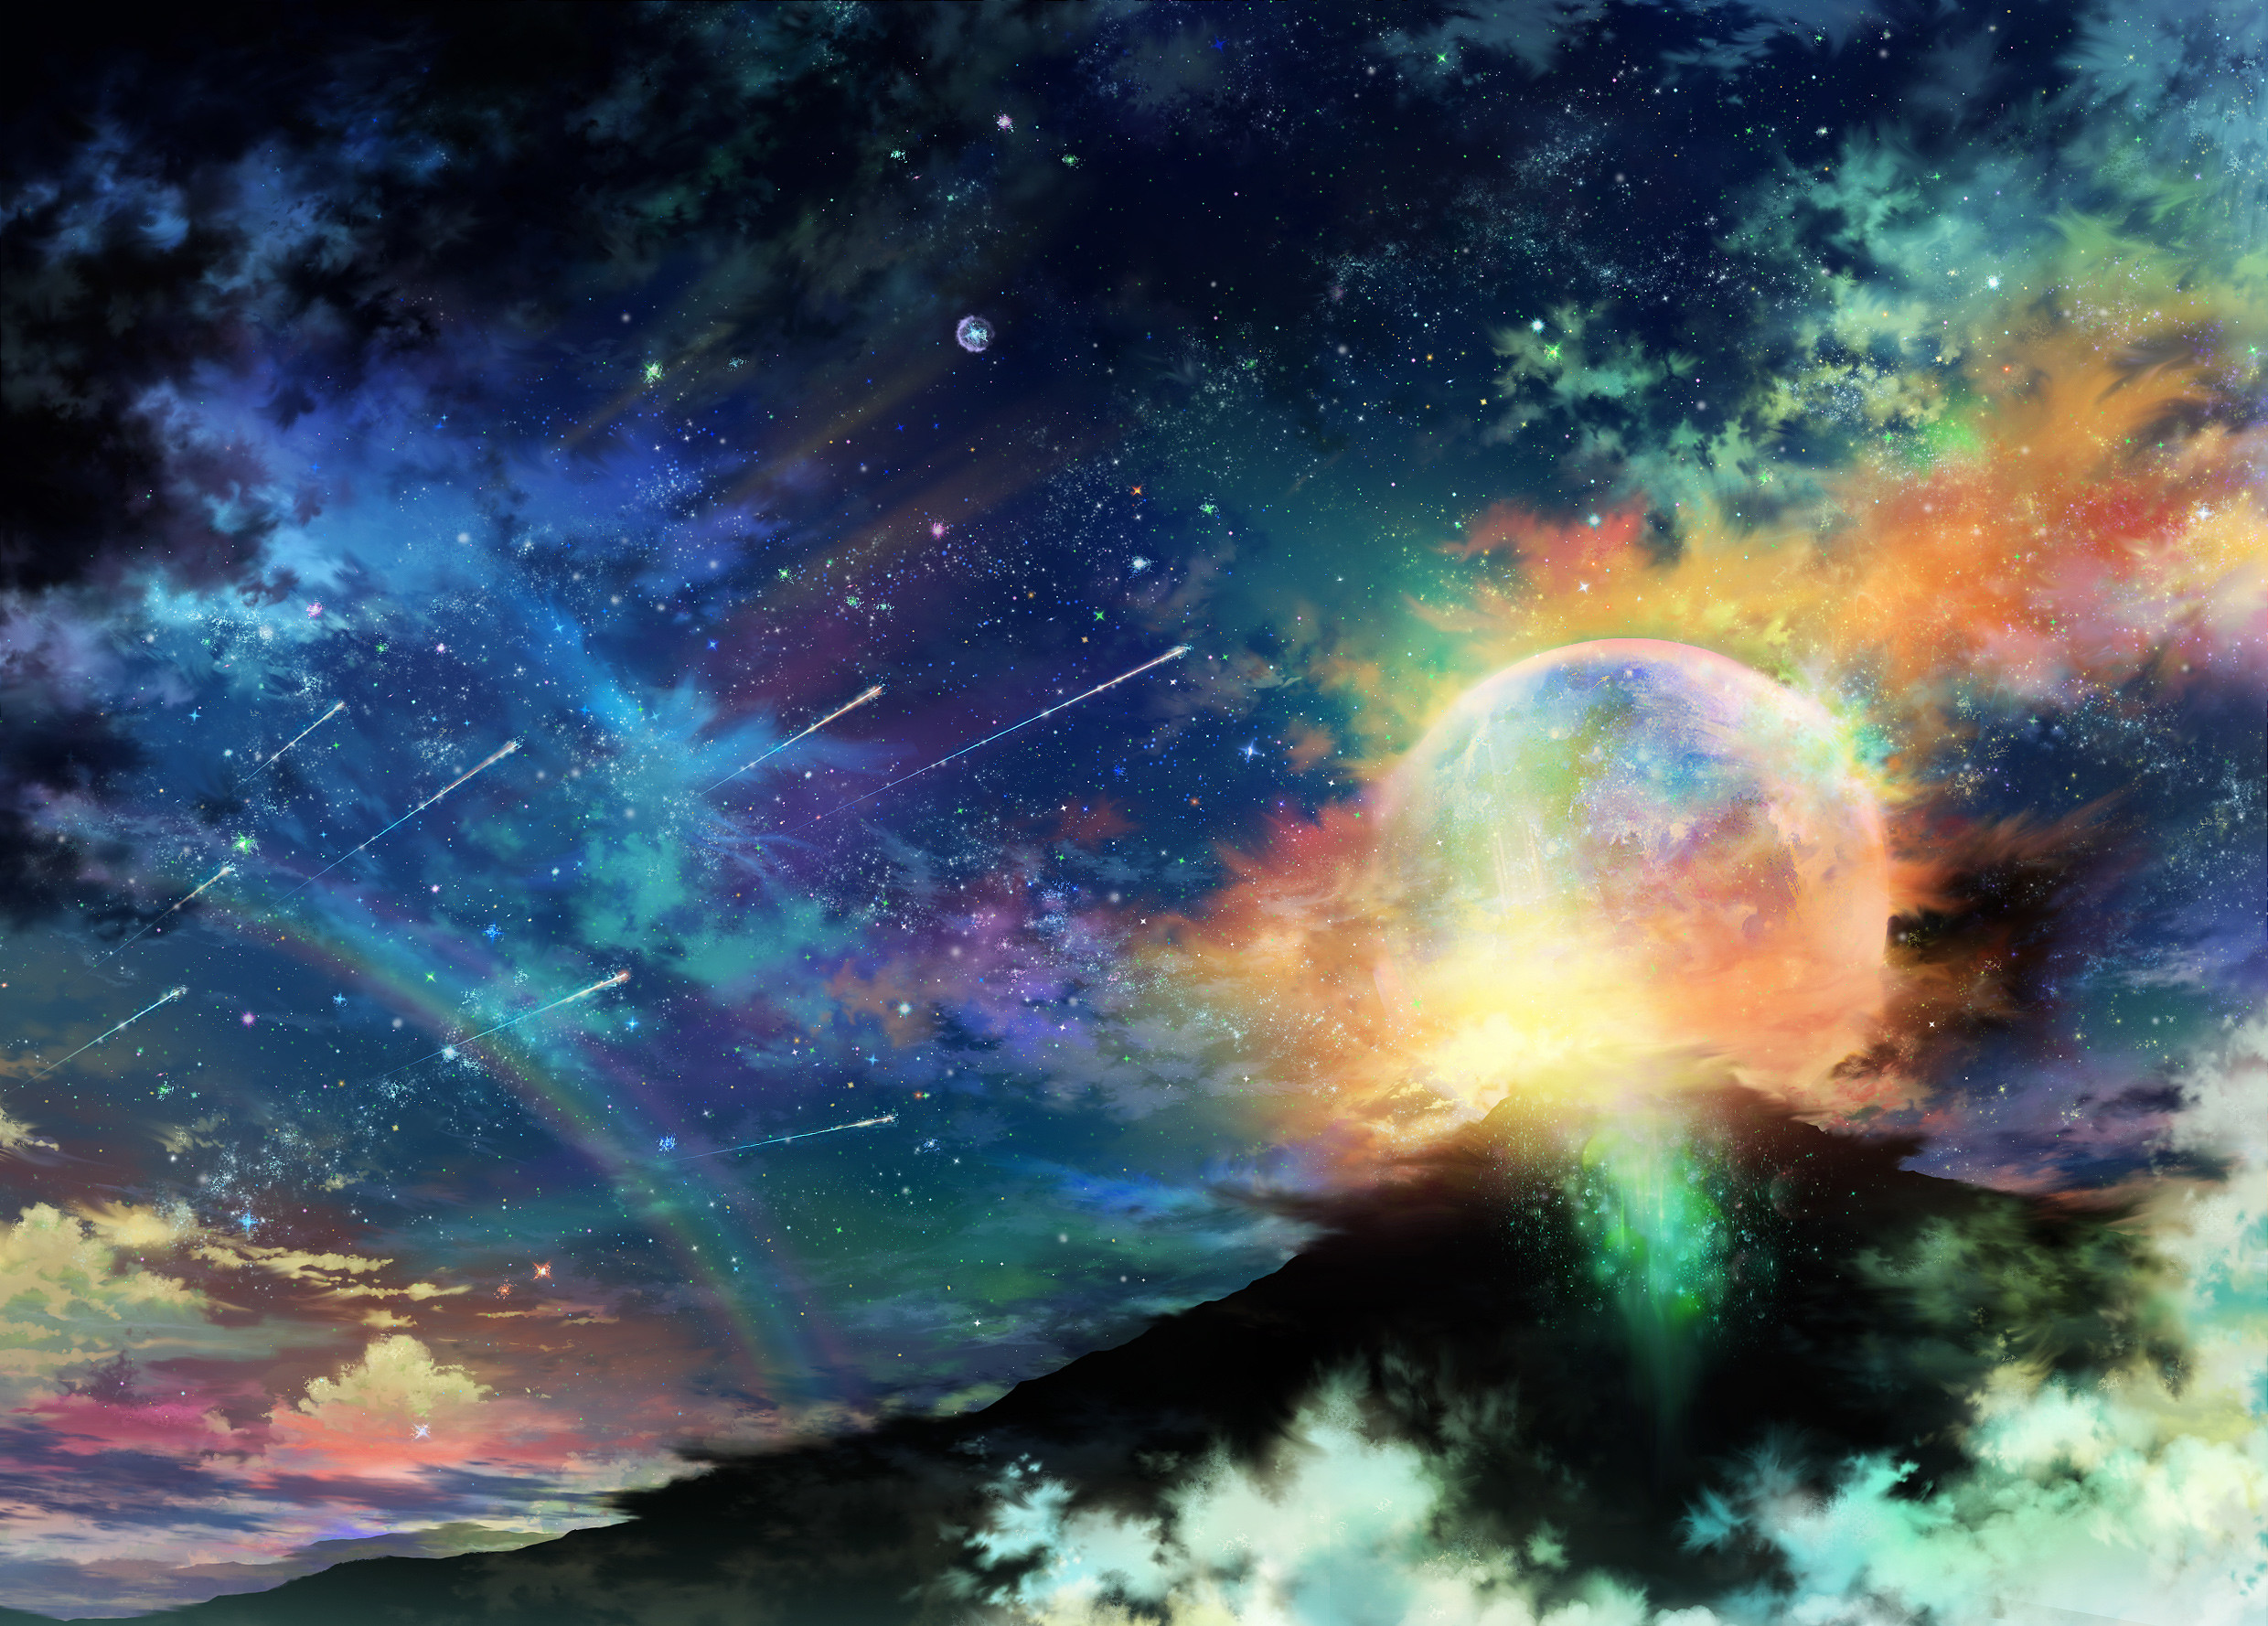 Awesome 2K-5K RESOLUTION SPACE WALLPAPERS